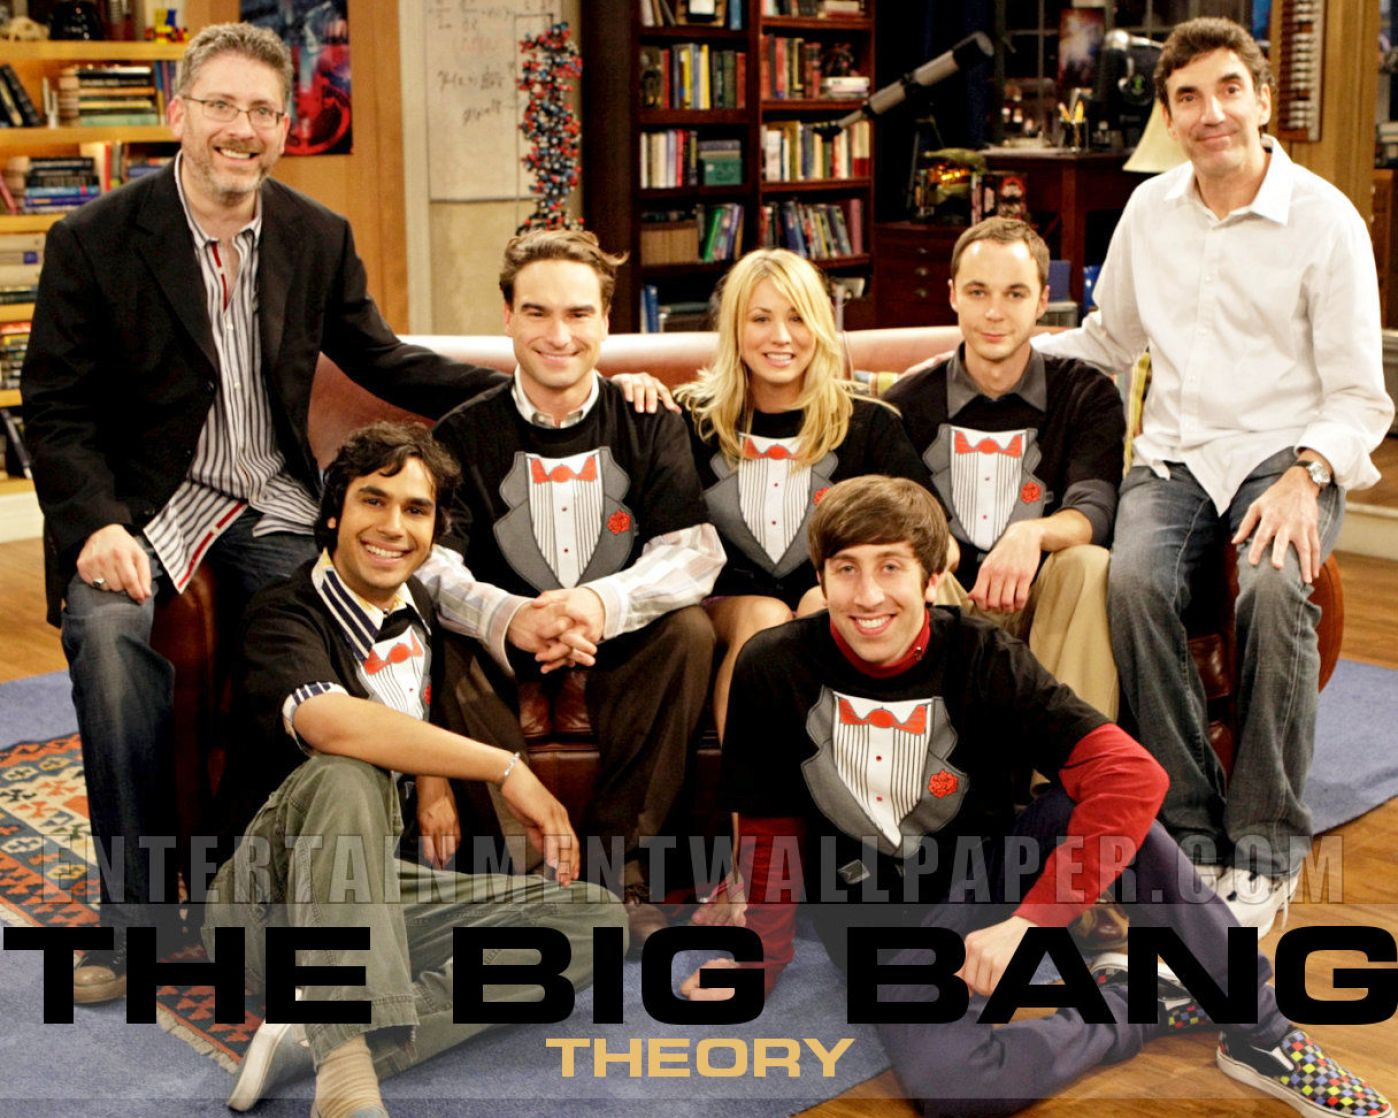 Big bang theory wallpaper pictures 2